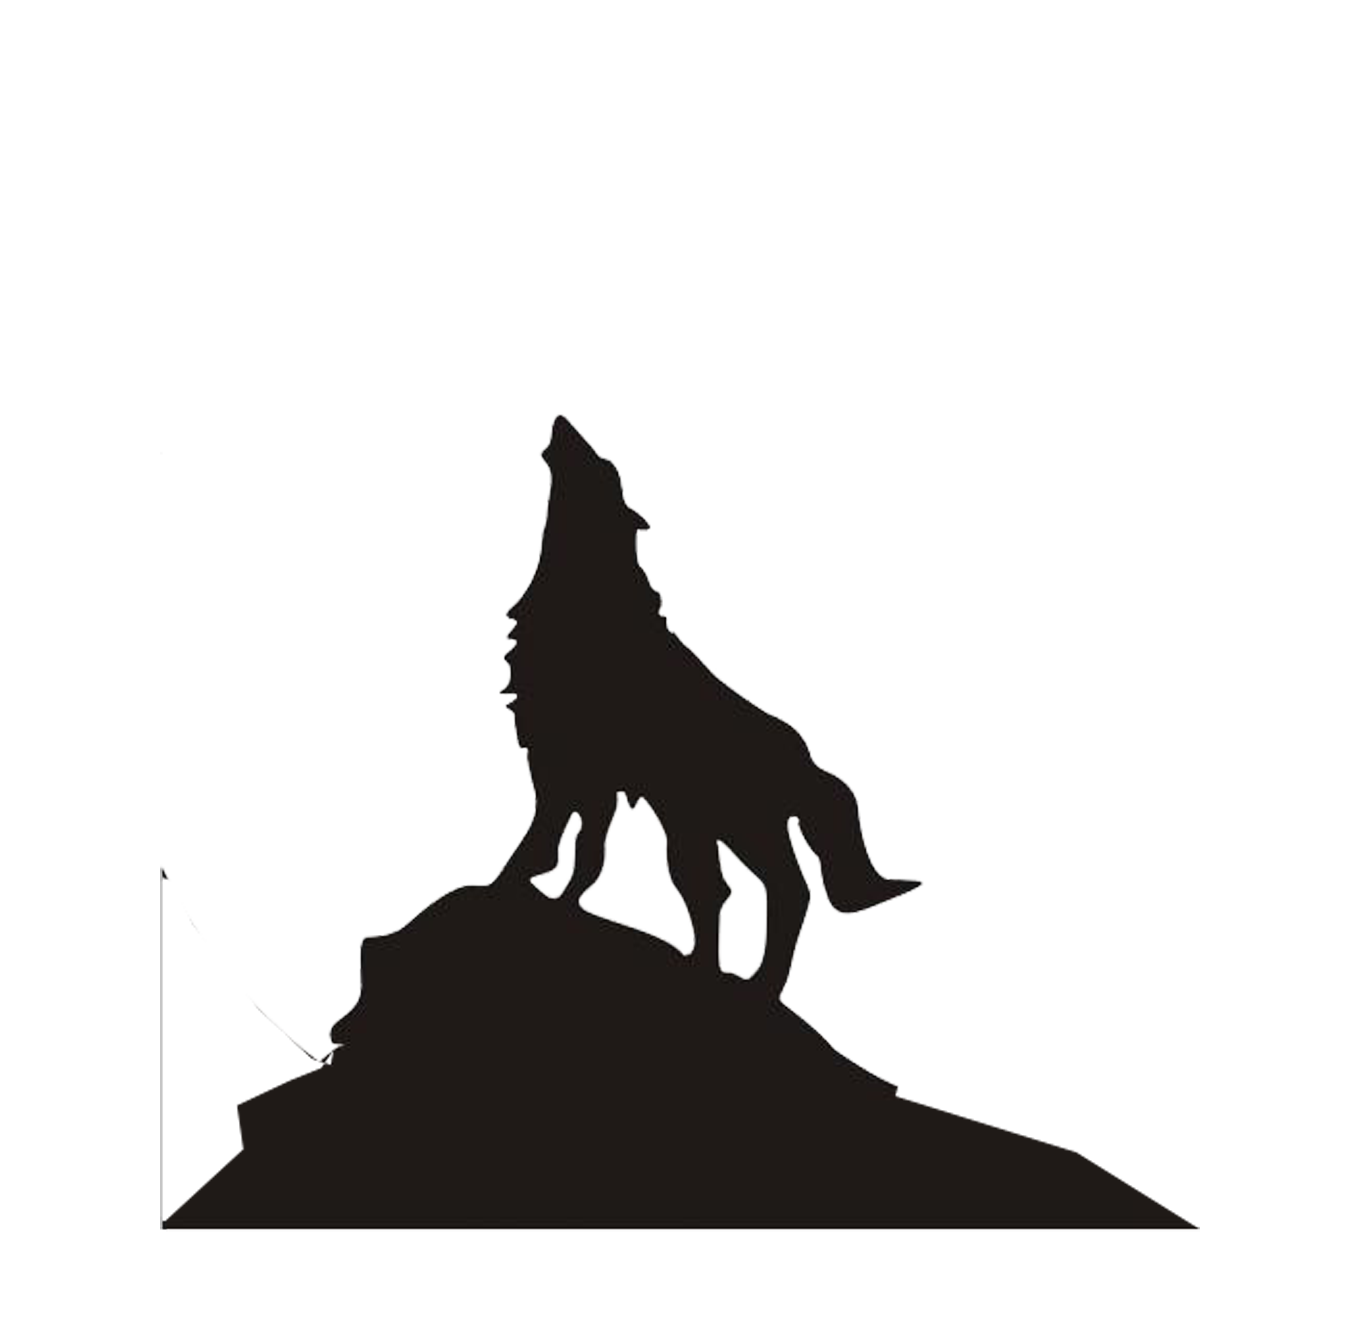 Wolf clipart mountain. Dog arctic dire eastern